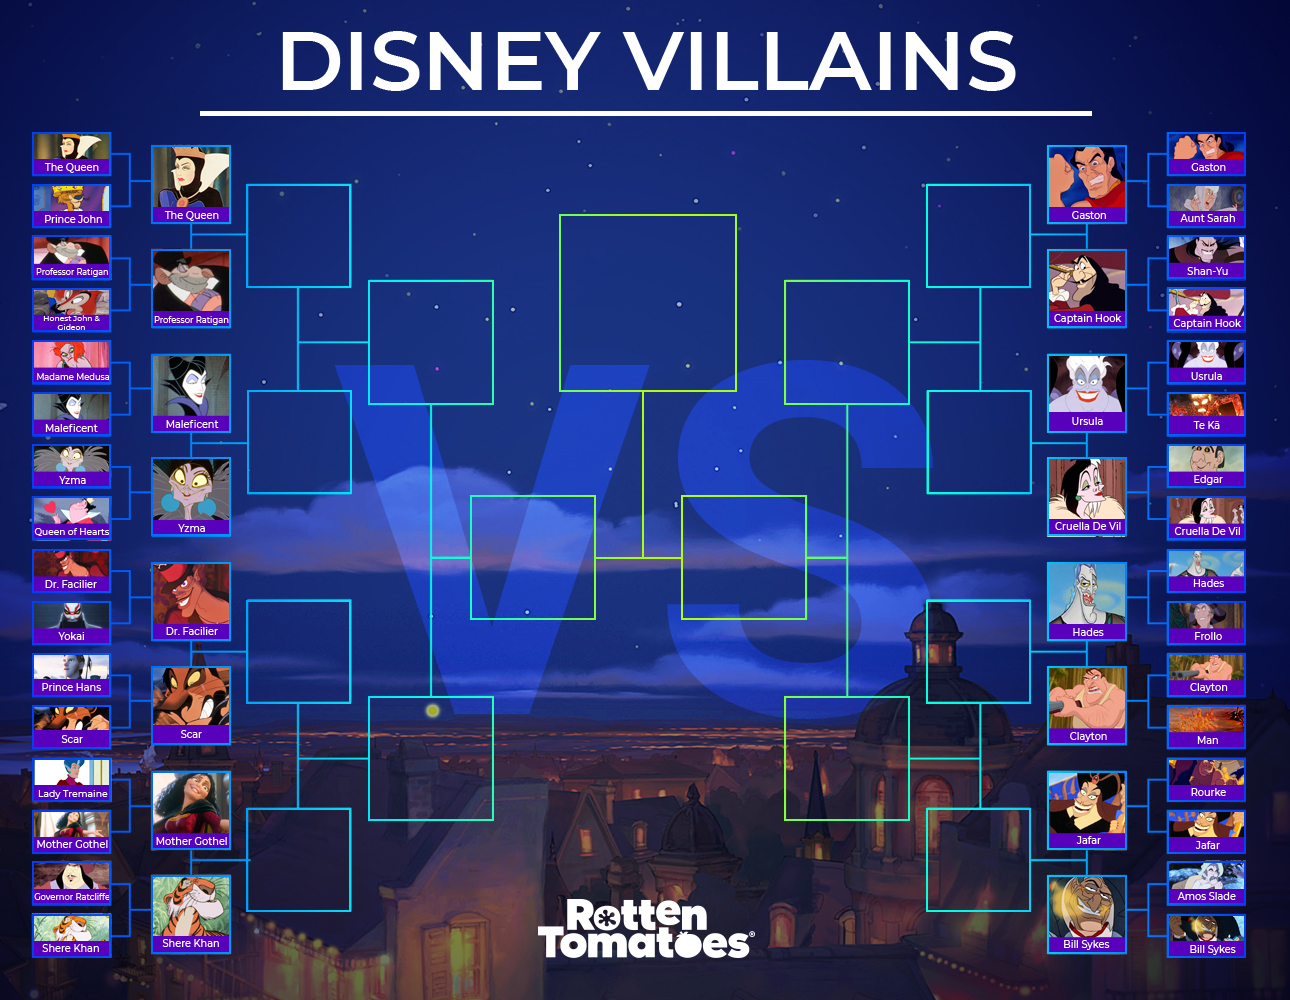 The Disney Villain Showdown - Round 2